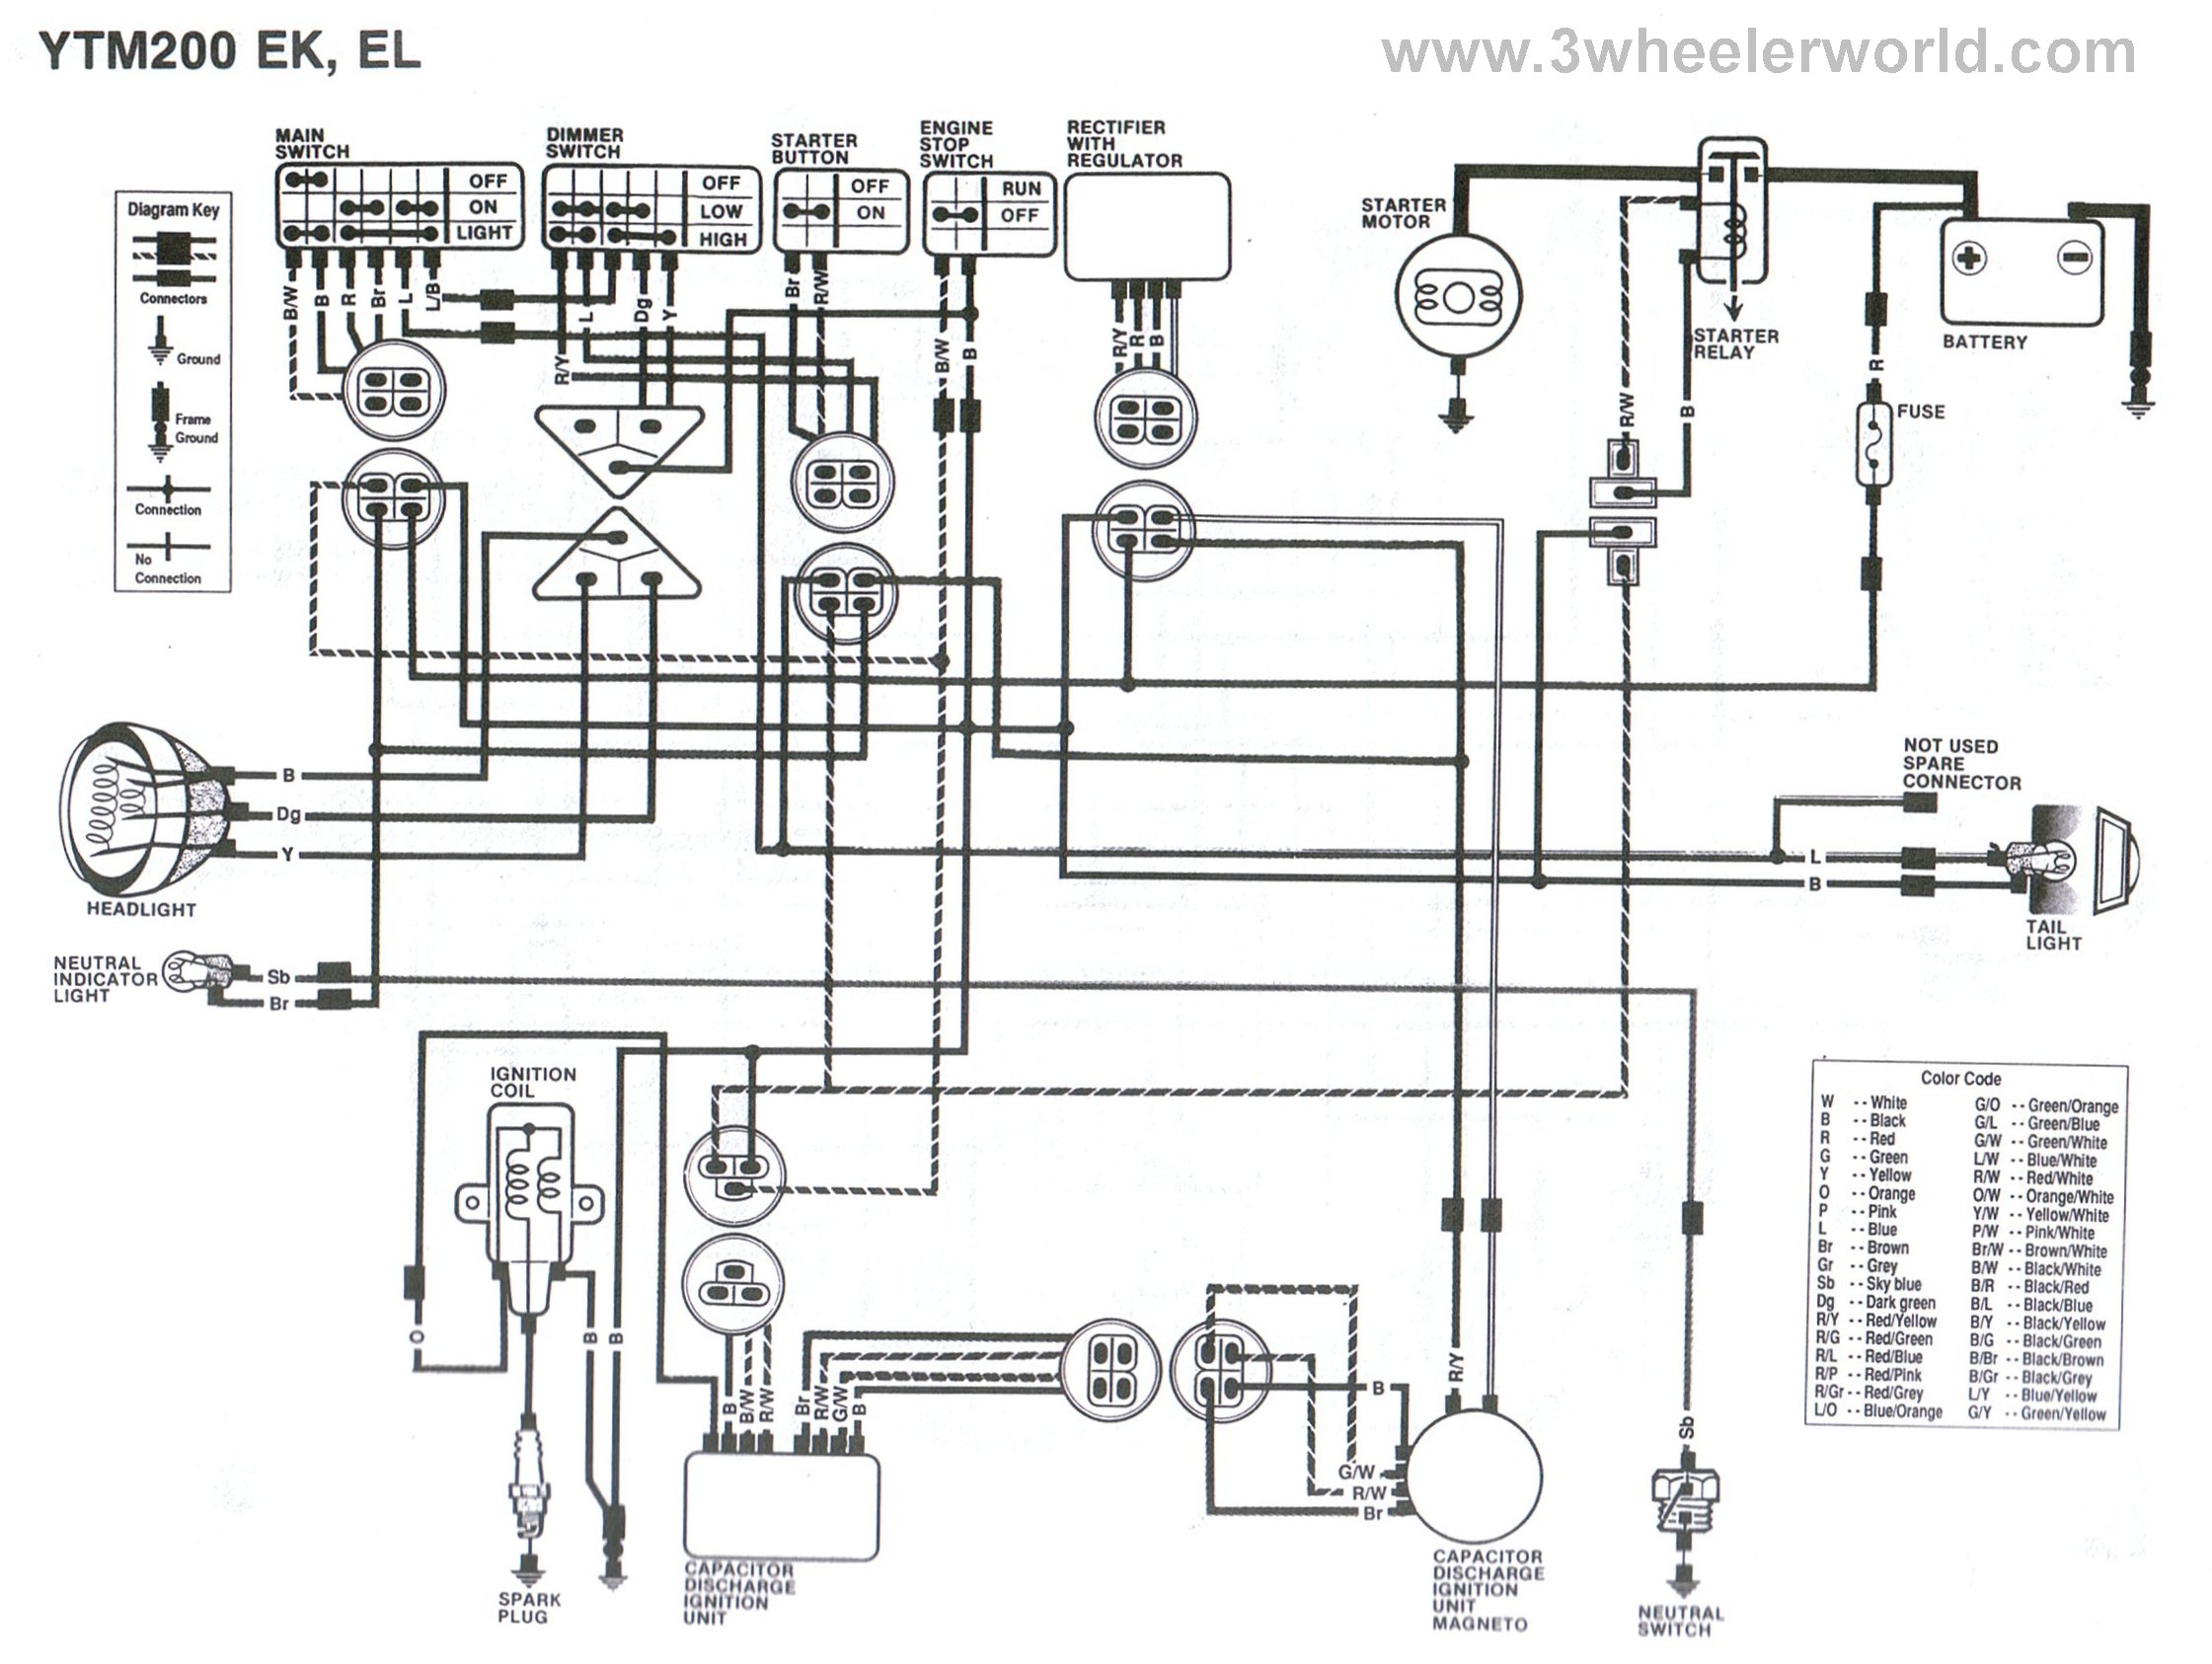 [SCHEMATICS_4HG]  E9359 84 Yamaha 225 Dx Wiring | Wiring Library | Wiring Diagram For Yahama Ytm 225dx |  | Wiring Library